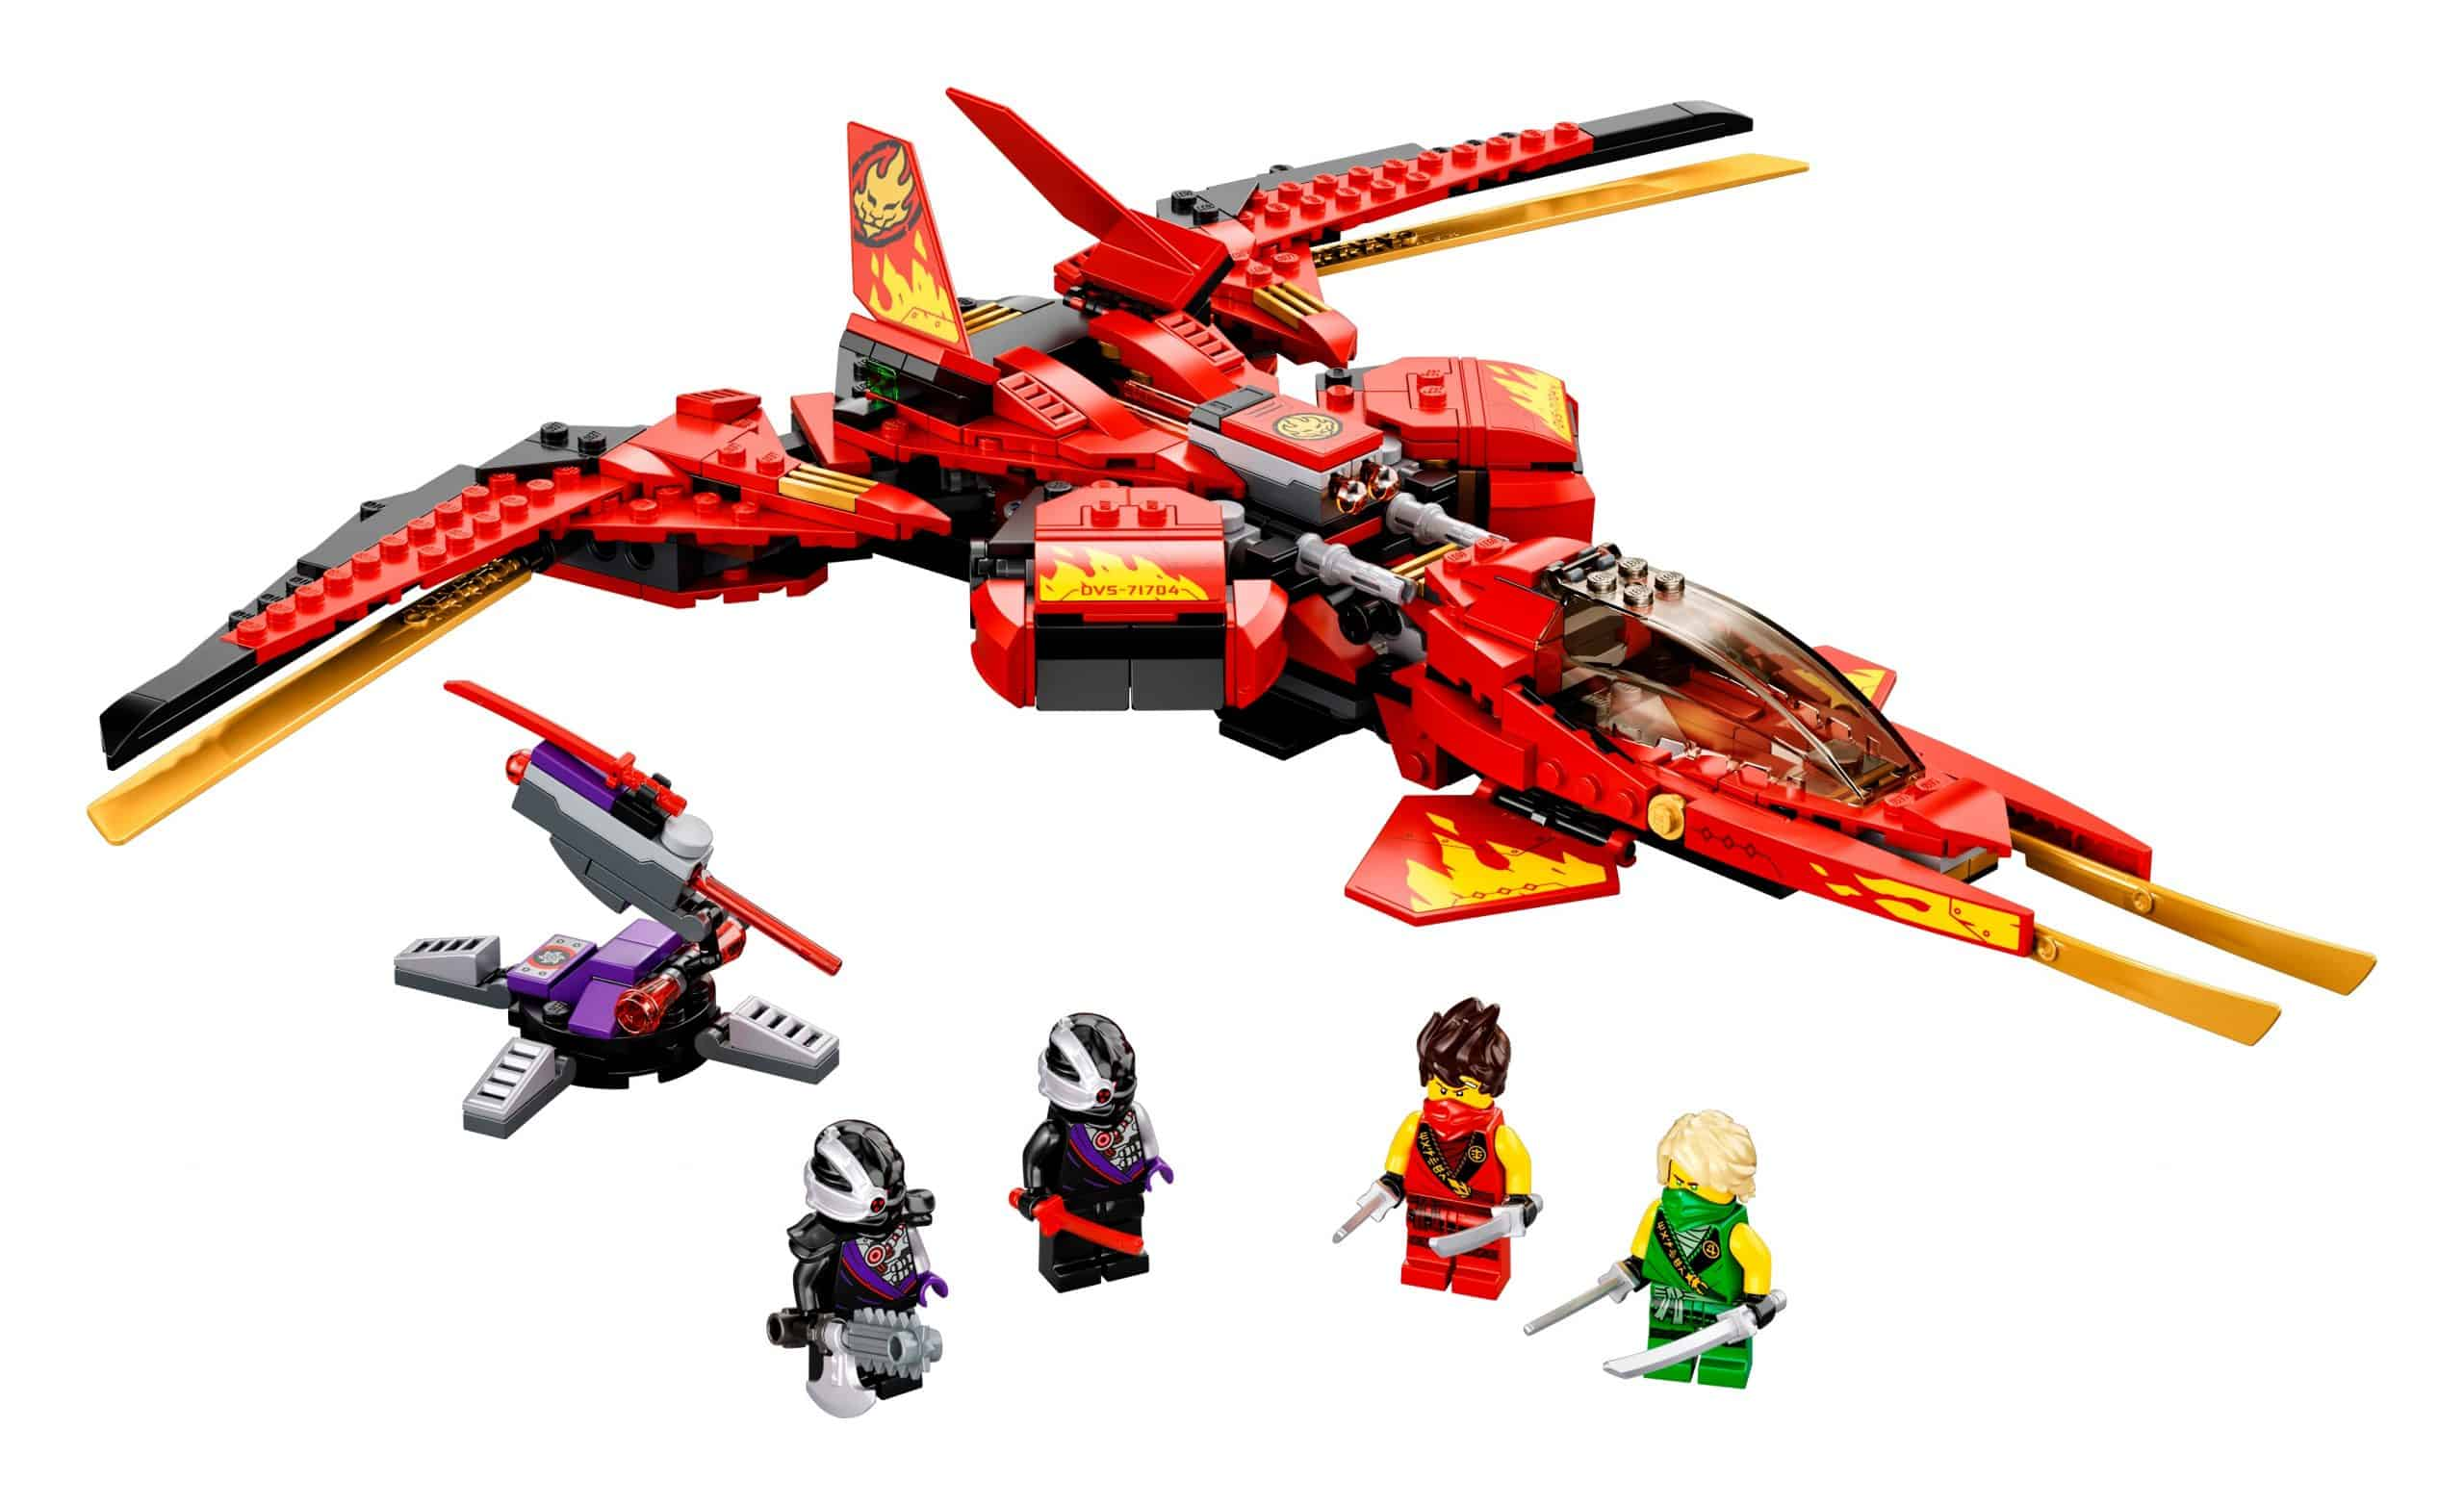 lego kai fighter 71704 scaled